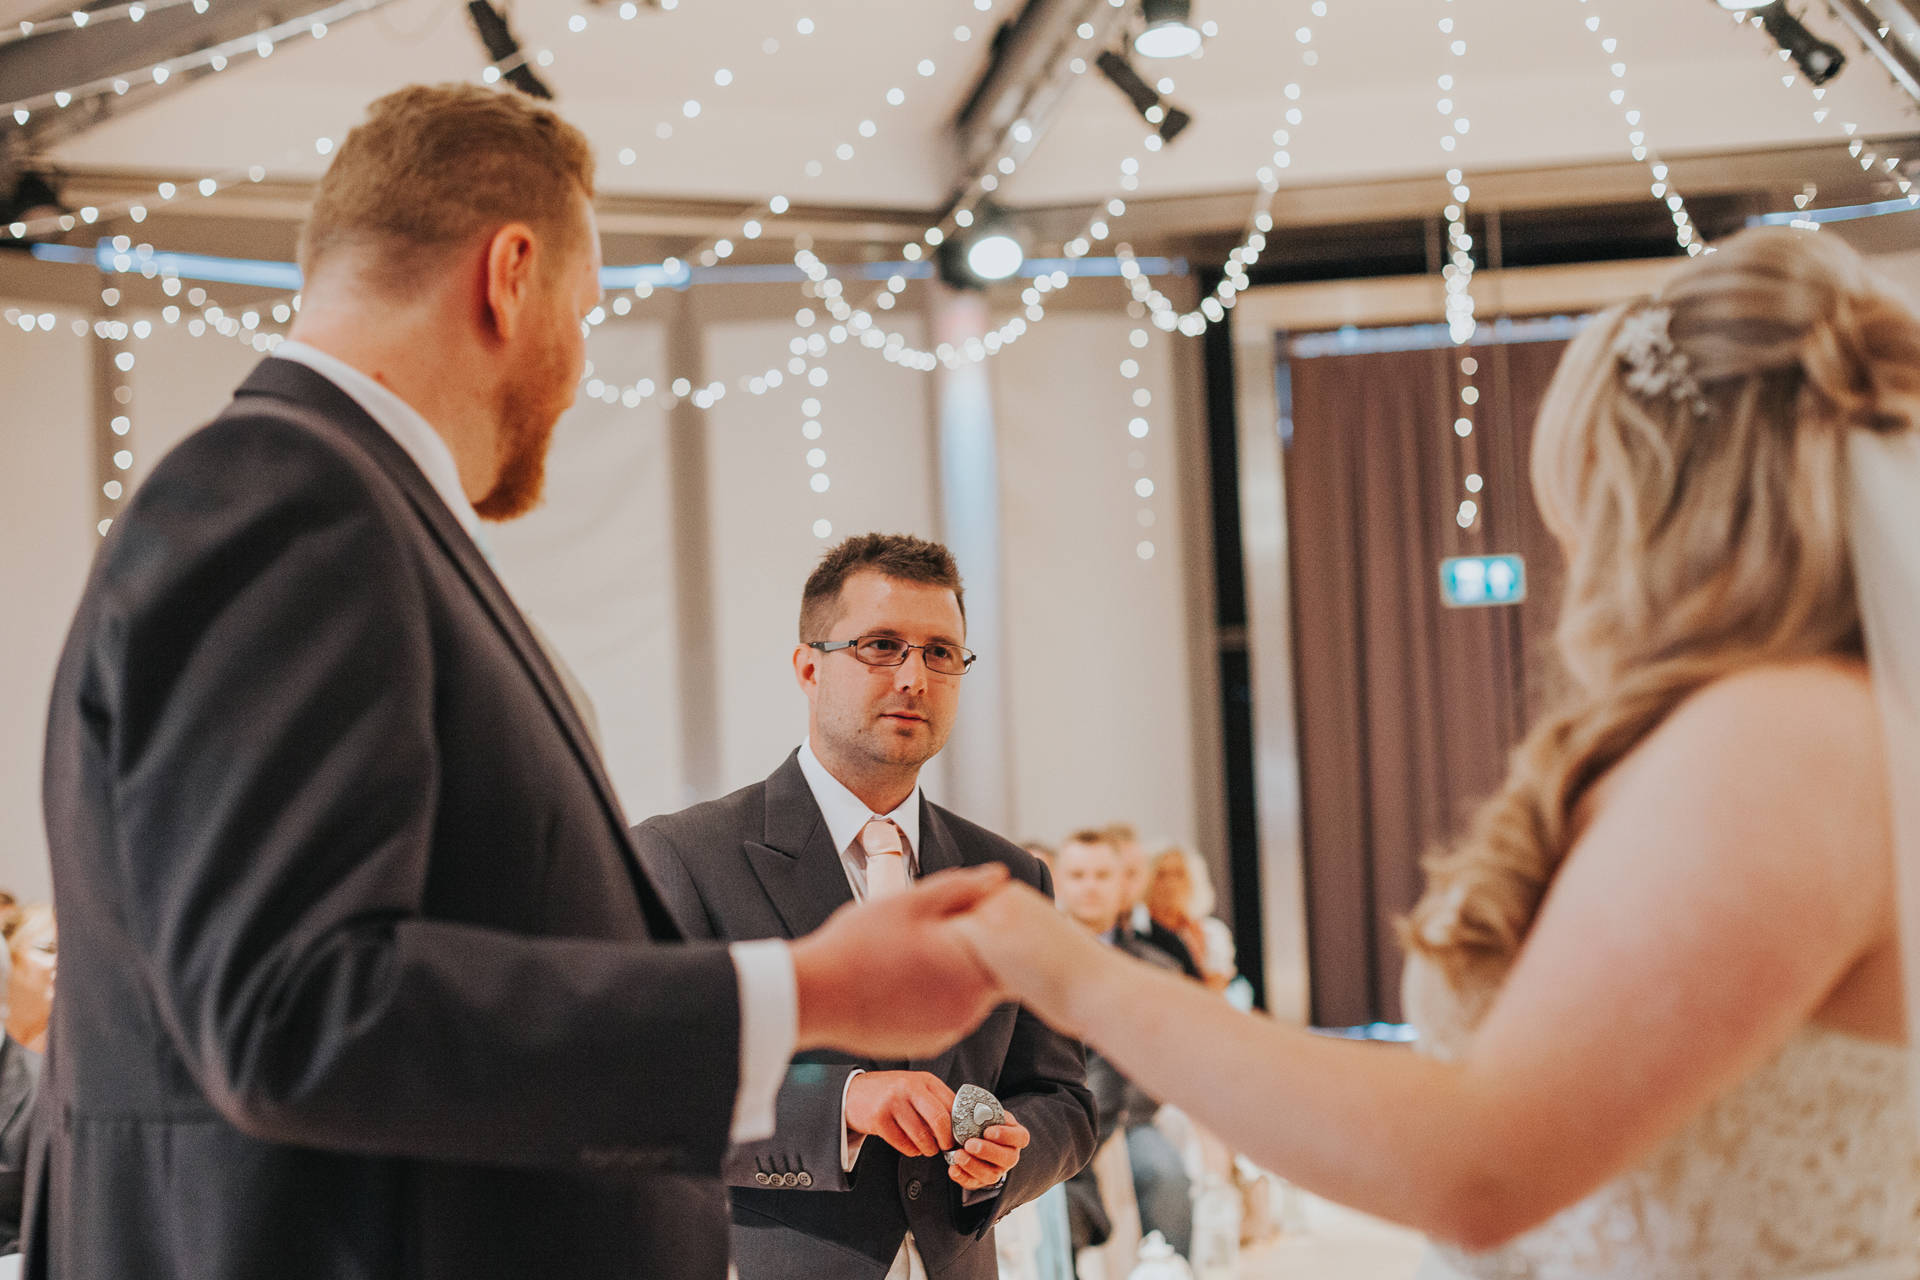 Best Man Delivers Brides Ring